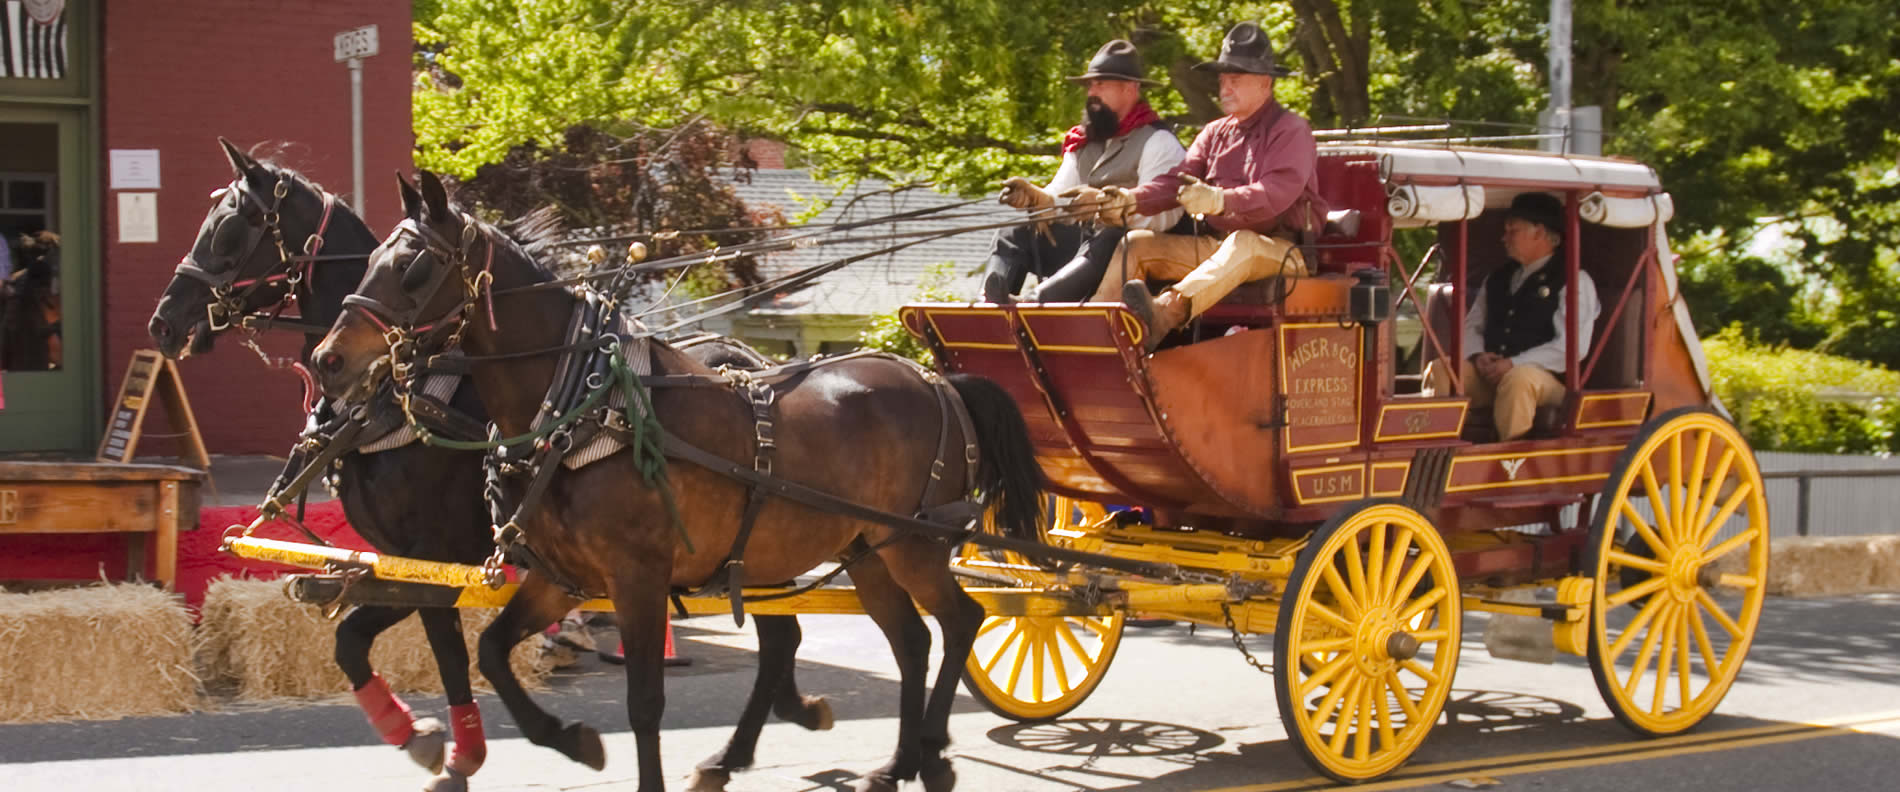 sutter creek heritage days